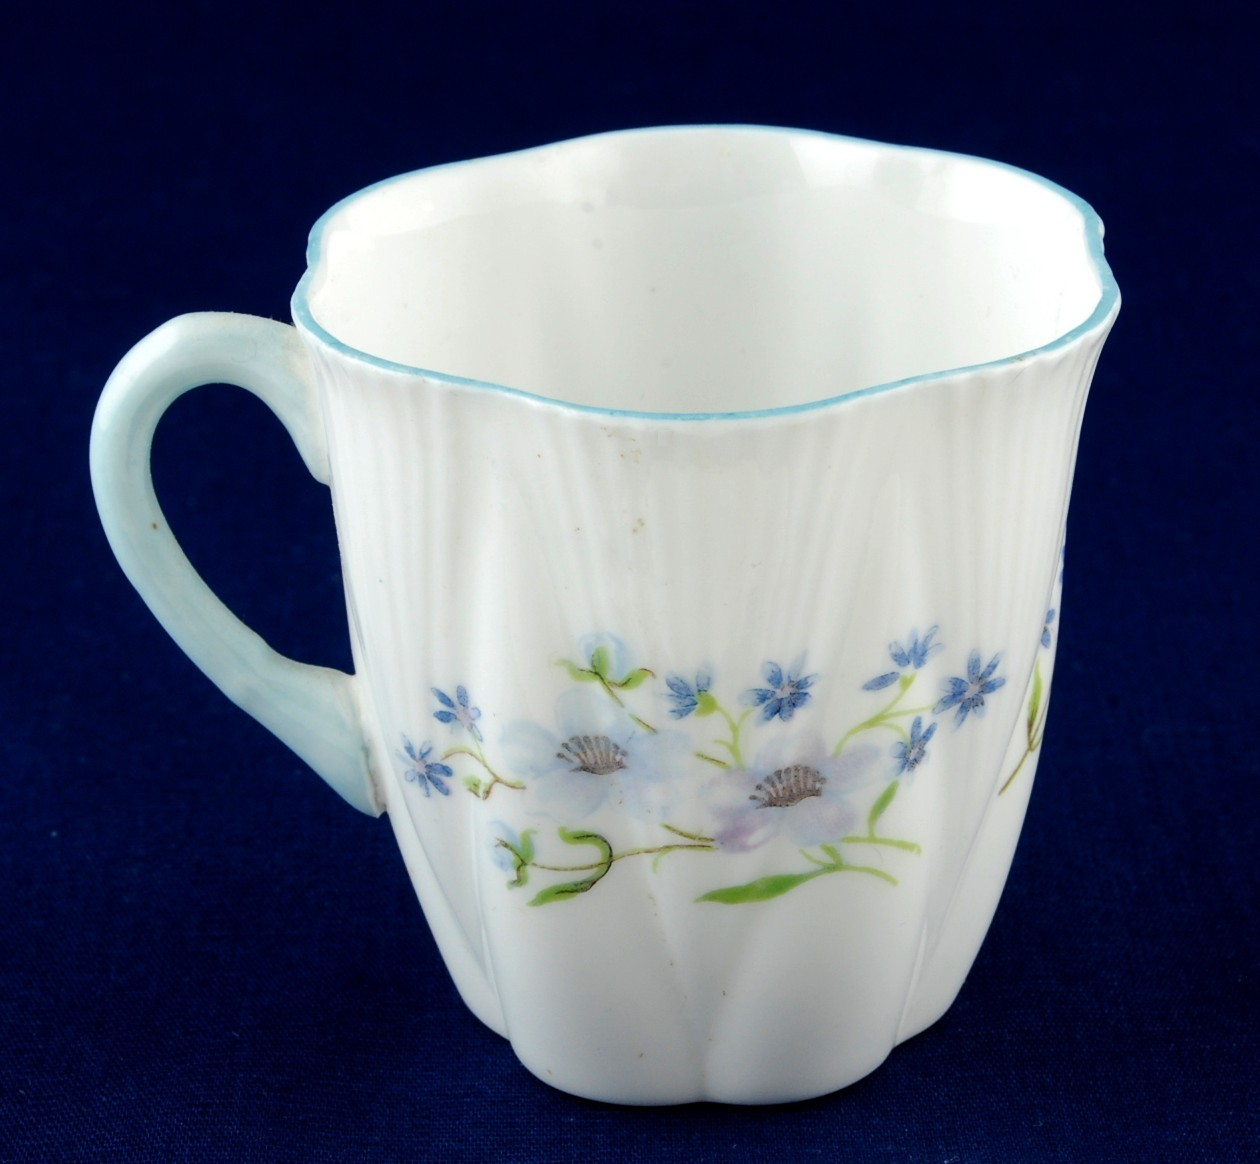 Primary image for Shelley Blue Rock Demitasse Orphan Cup Dainty Shape Blue Rim 13691 Excellent